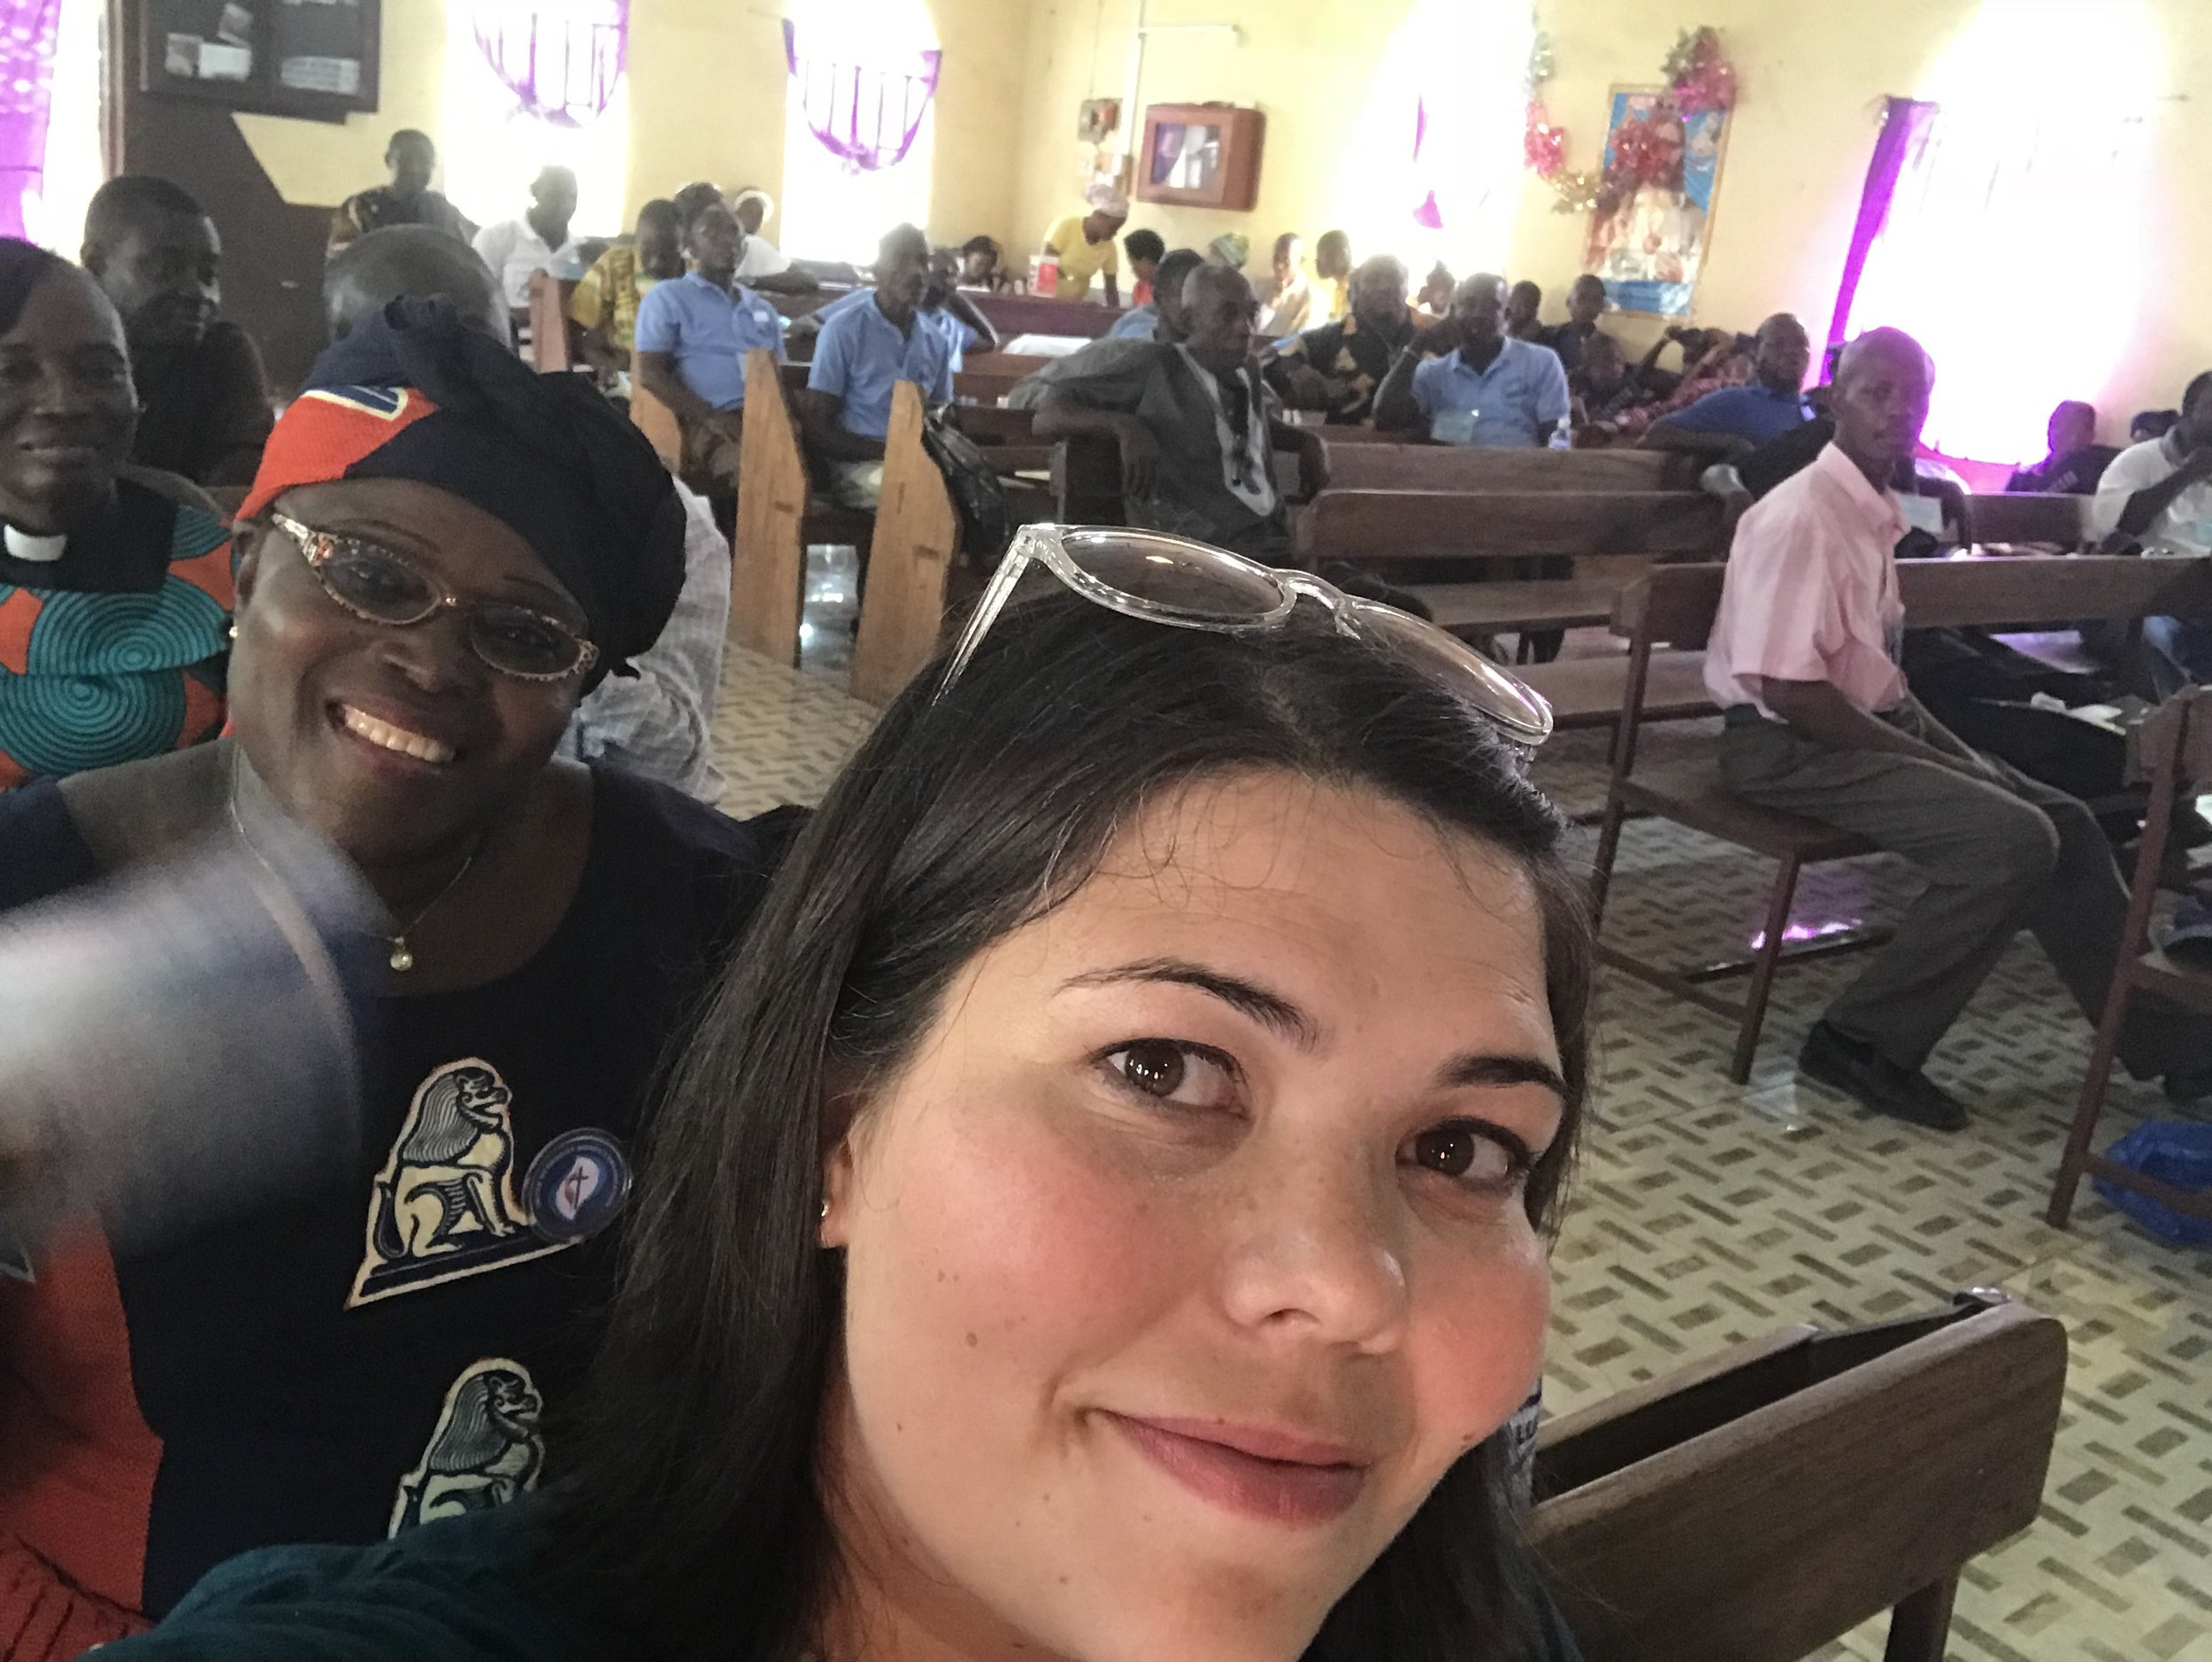 Bringing selfies to Salone. This was at the beginning of the weekend on a work day. I expect, just like church, that it filled up slowly over time.